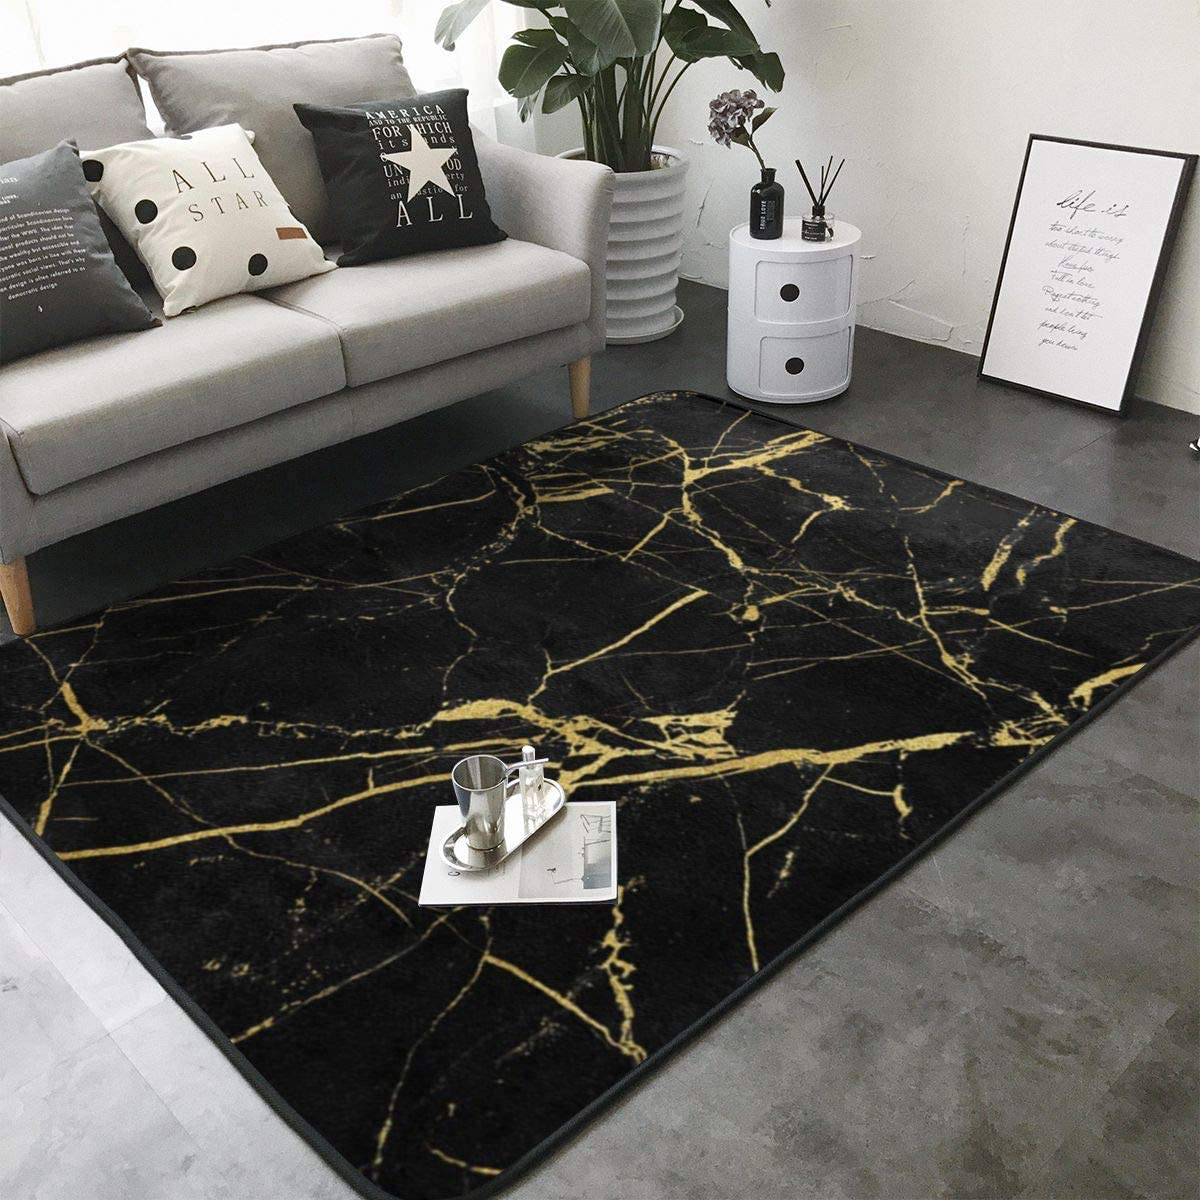 Kasablaro Black Gold Marble Print Area Rug Carpet Contemporary Rugs Living Room Dining Area Rugs Room Rugs Office Rugs Modern Rug 80 X 58 Home Kitchen